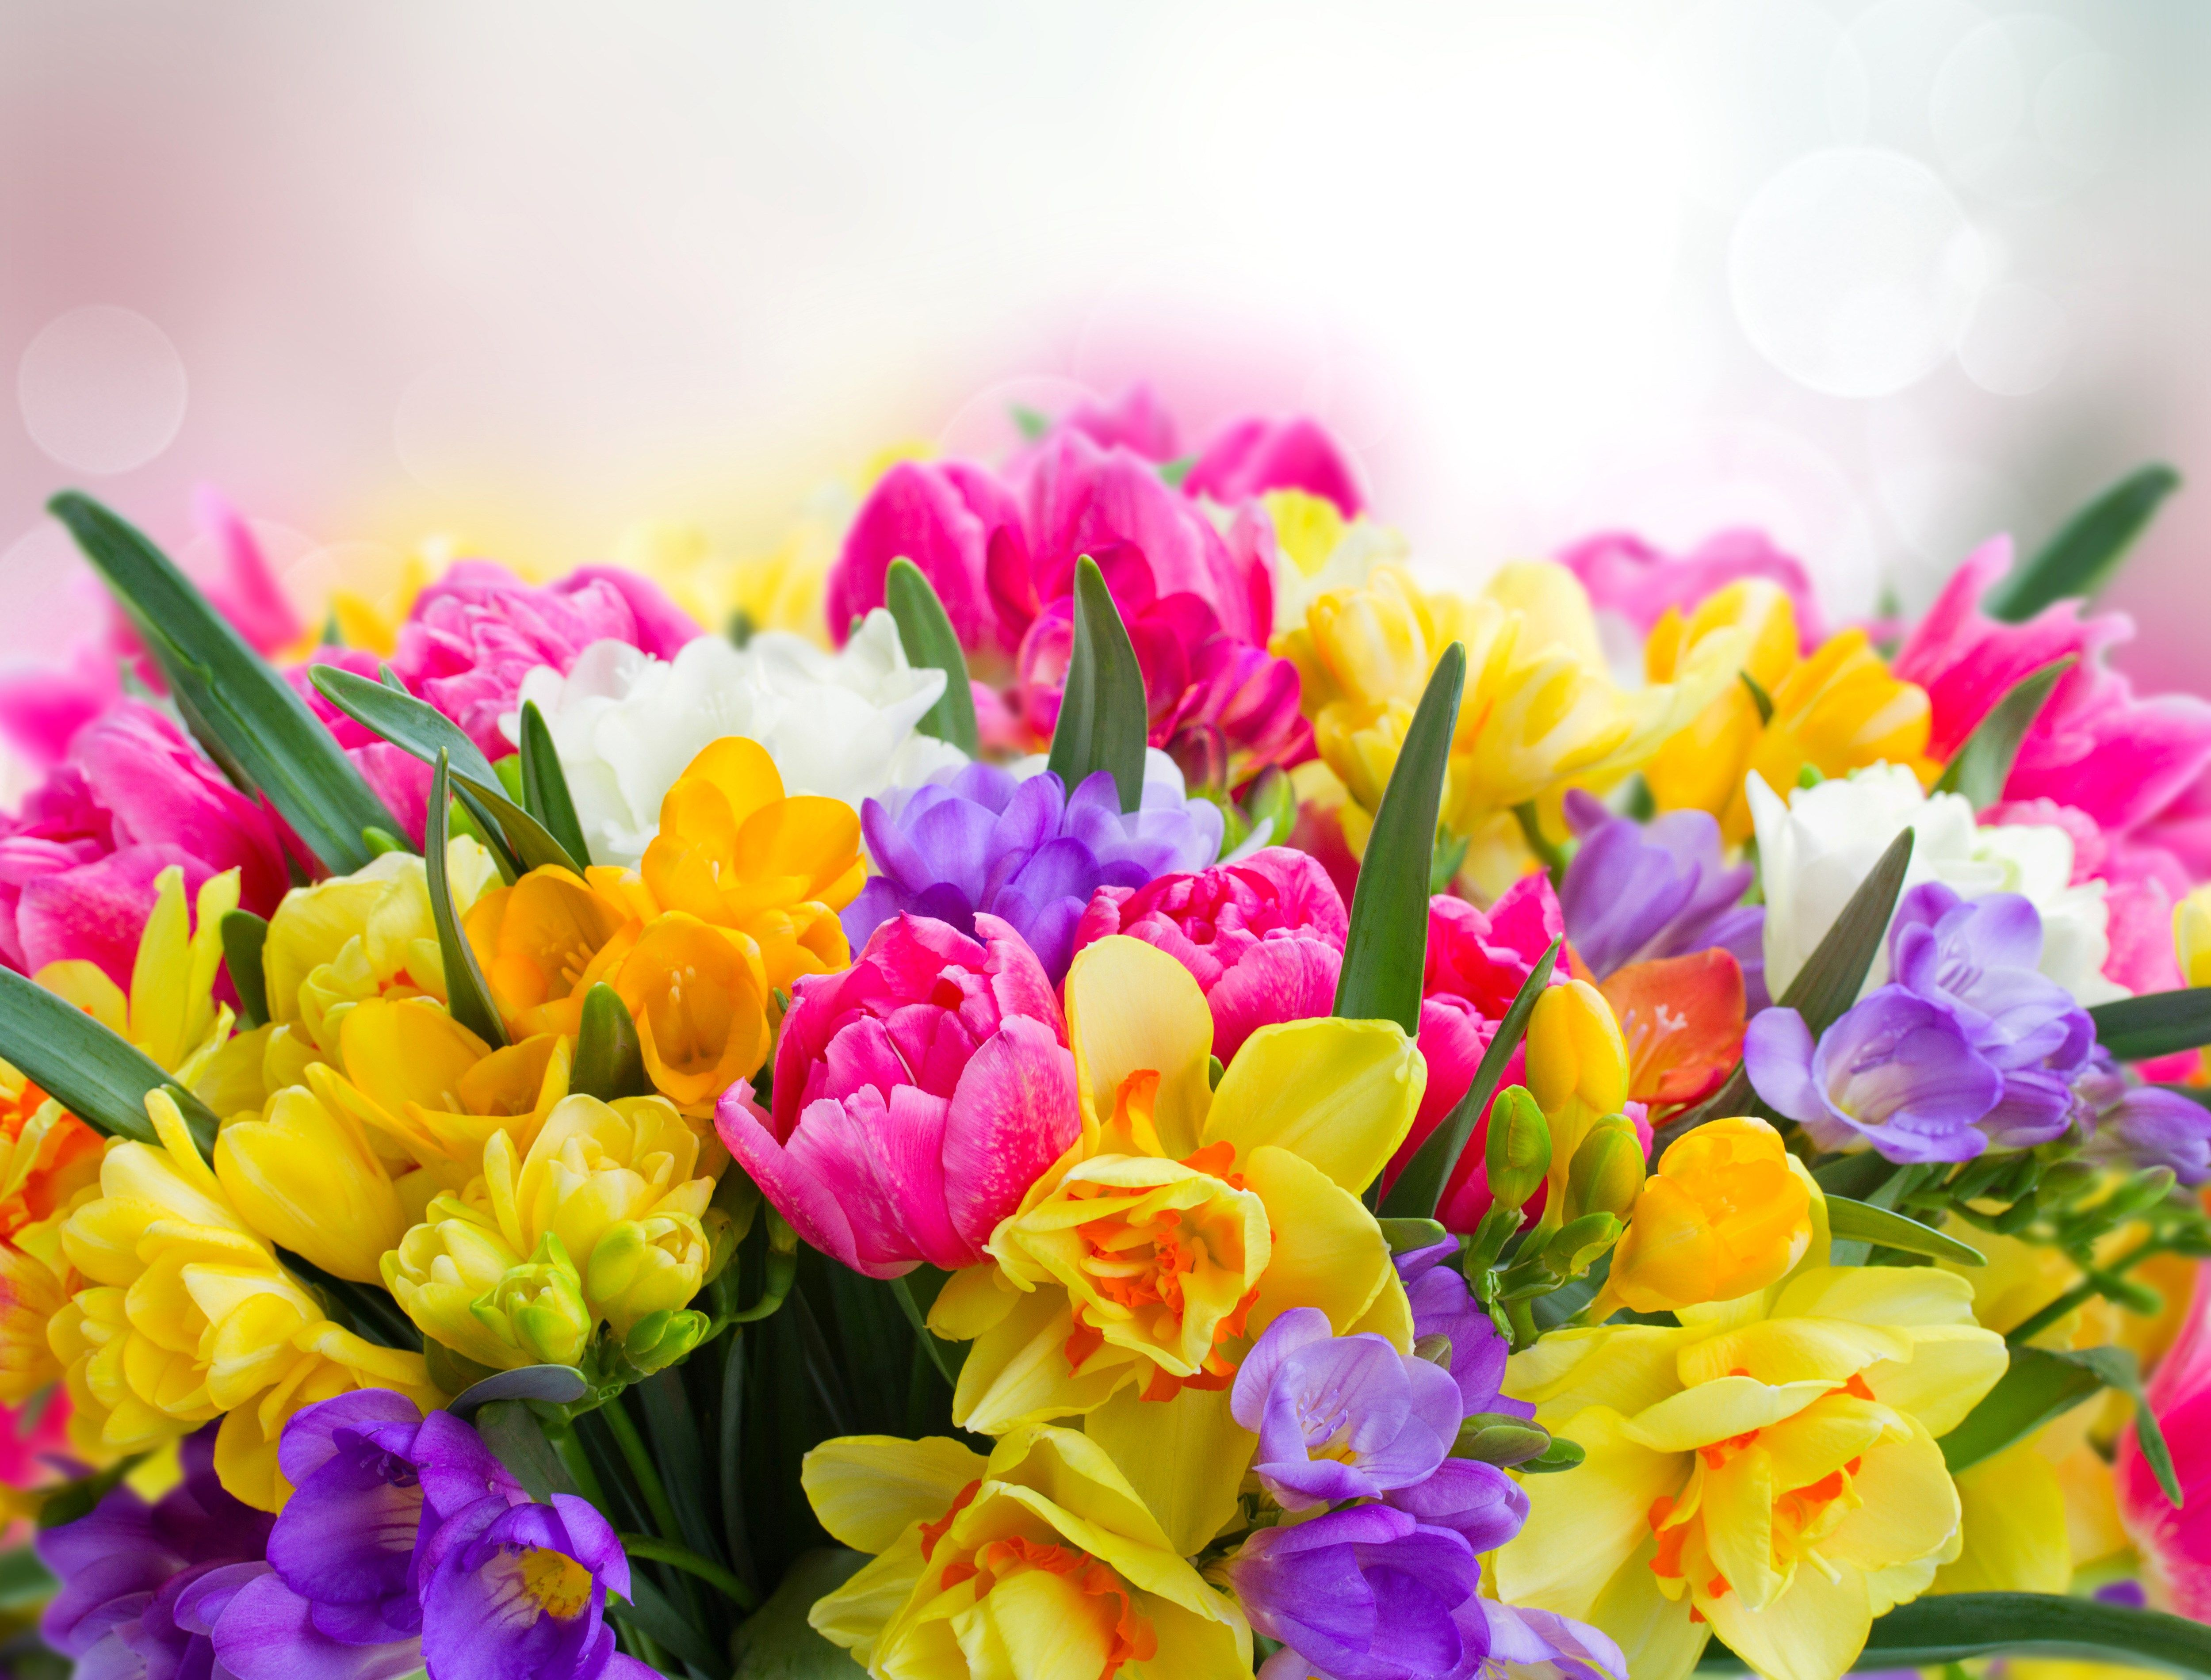 Flower Background Hd 5000x3800 Pictures Of Spring Flowers Flower Wallpaper Spring Flowers